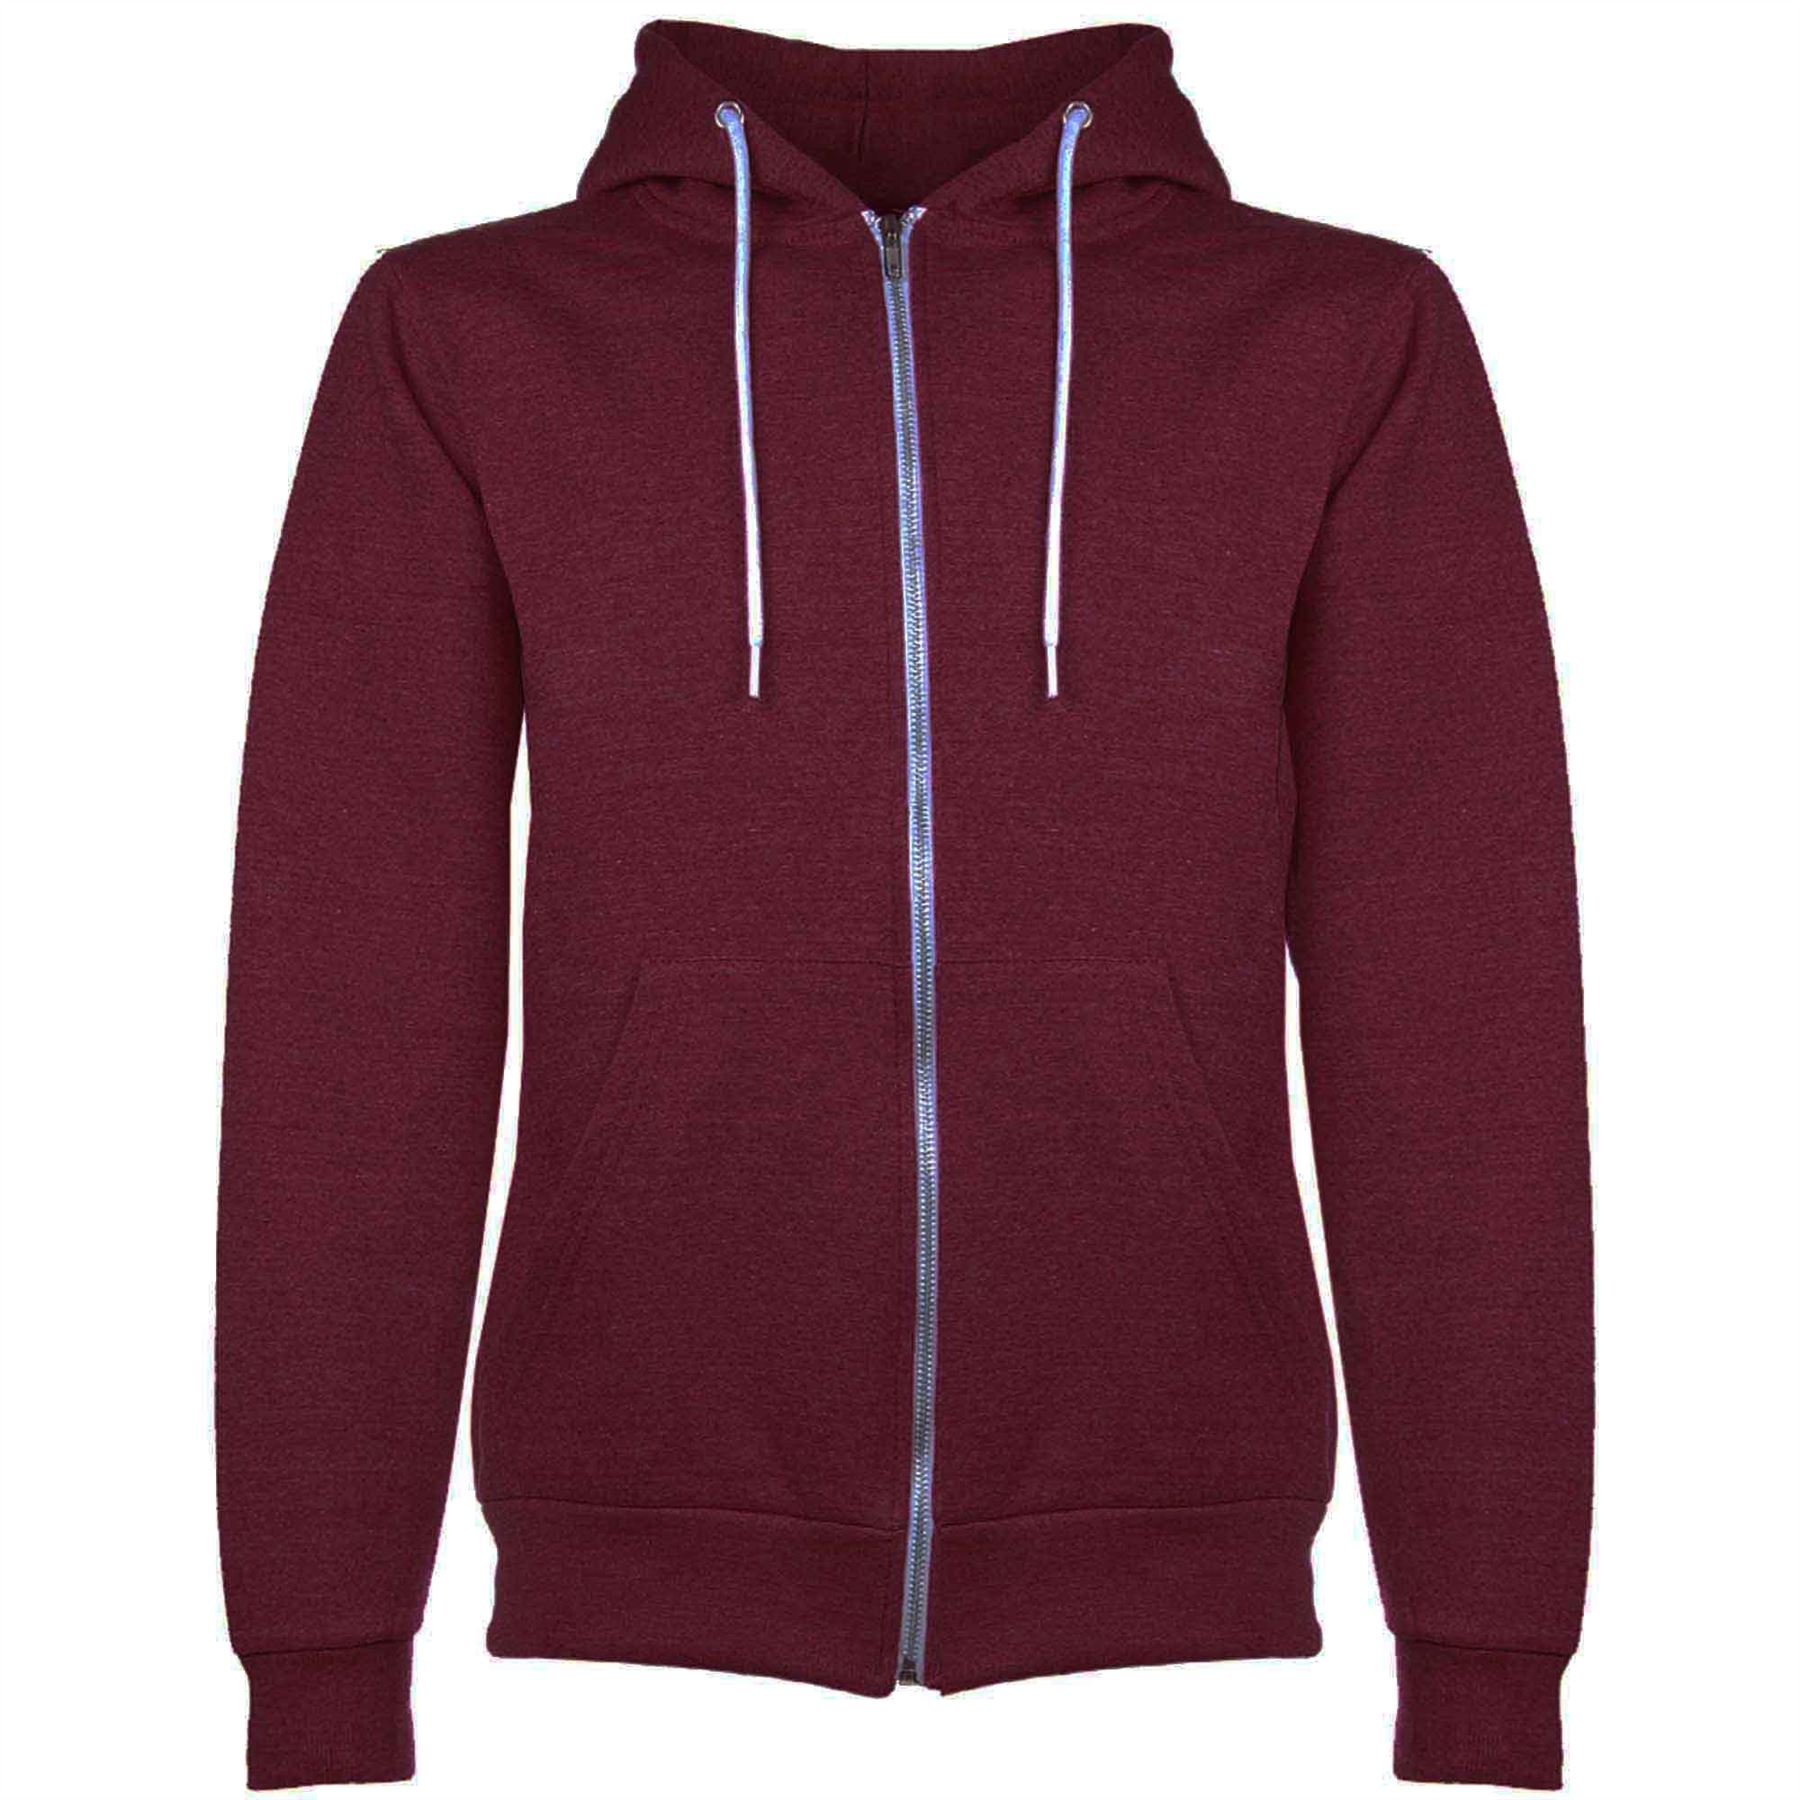 Discover Hoodies for men at ASOS. Shop for the latest range of plain & printed hoodies in all colors available from ASOS.